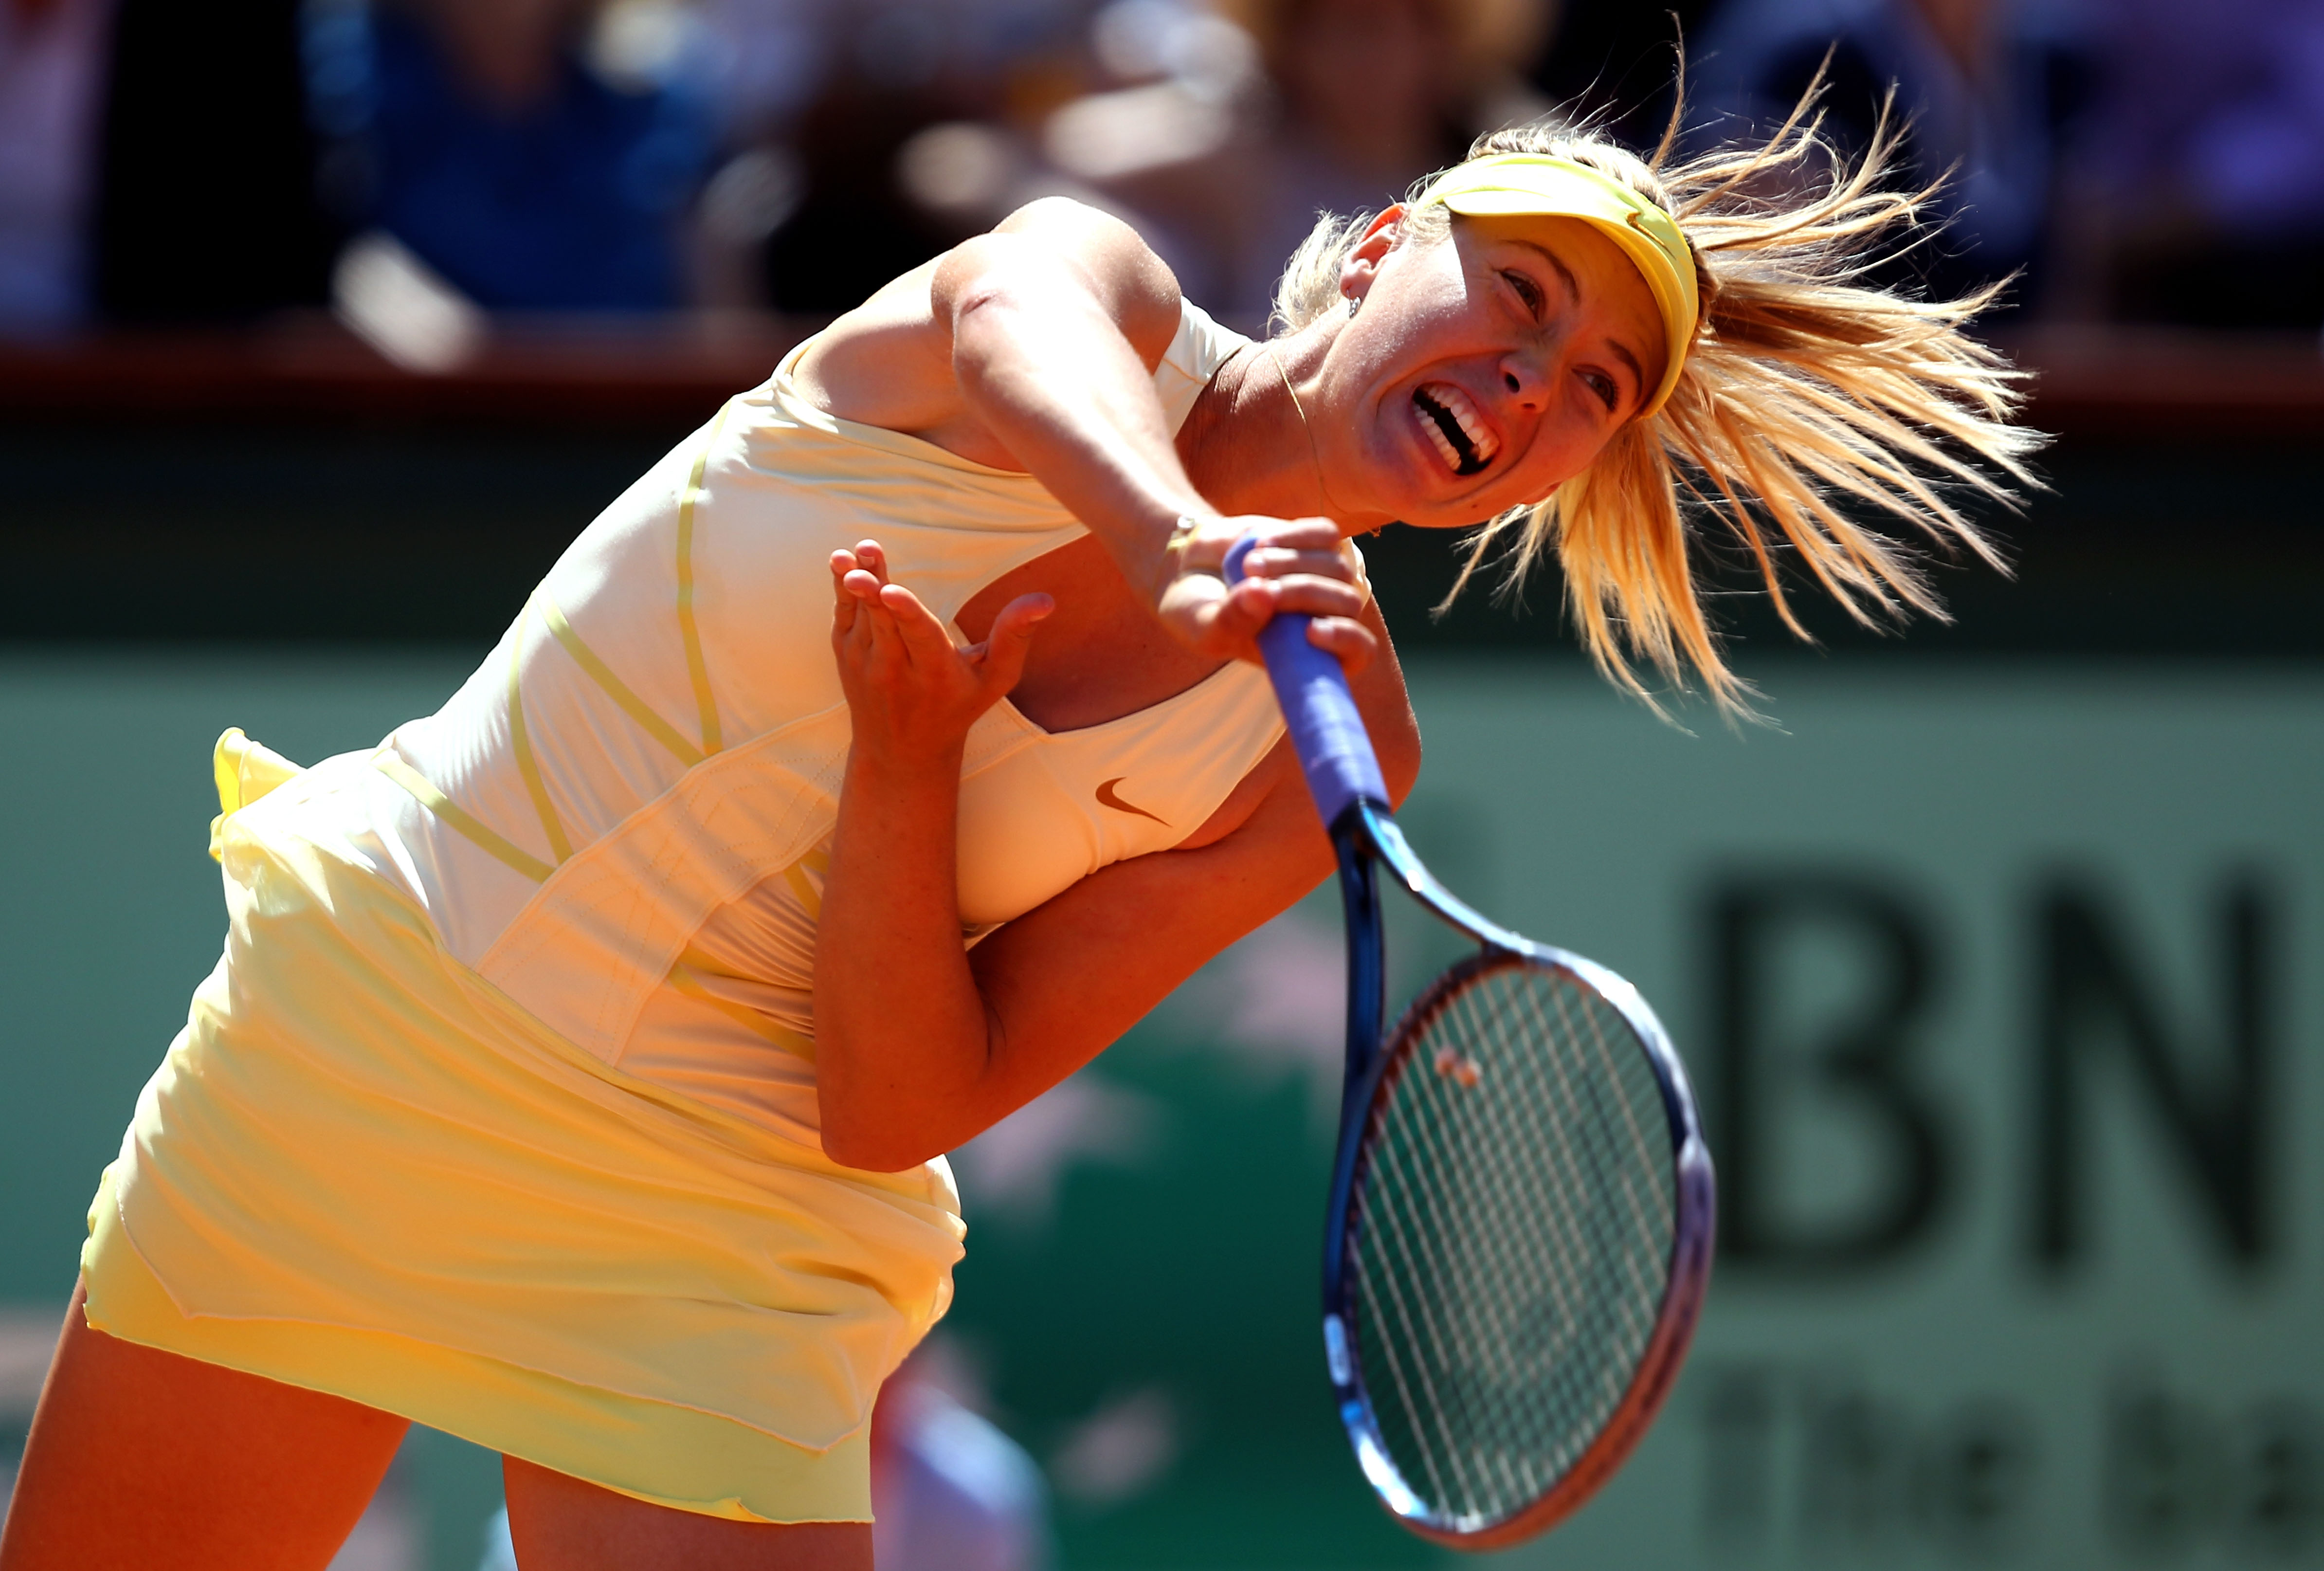 PARIS, FRANCE - JUNE 02:  Maria Sharapova of Russia serves during the women's singles semi final match between Na Li of China and Maria Sharapova of Russia on day twelve of the French Open at Roland Garros on June 2, 2011 in Paris, France.  (Photo by Cliv